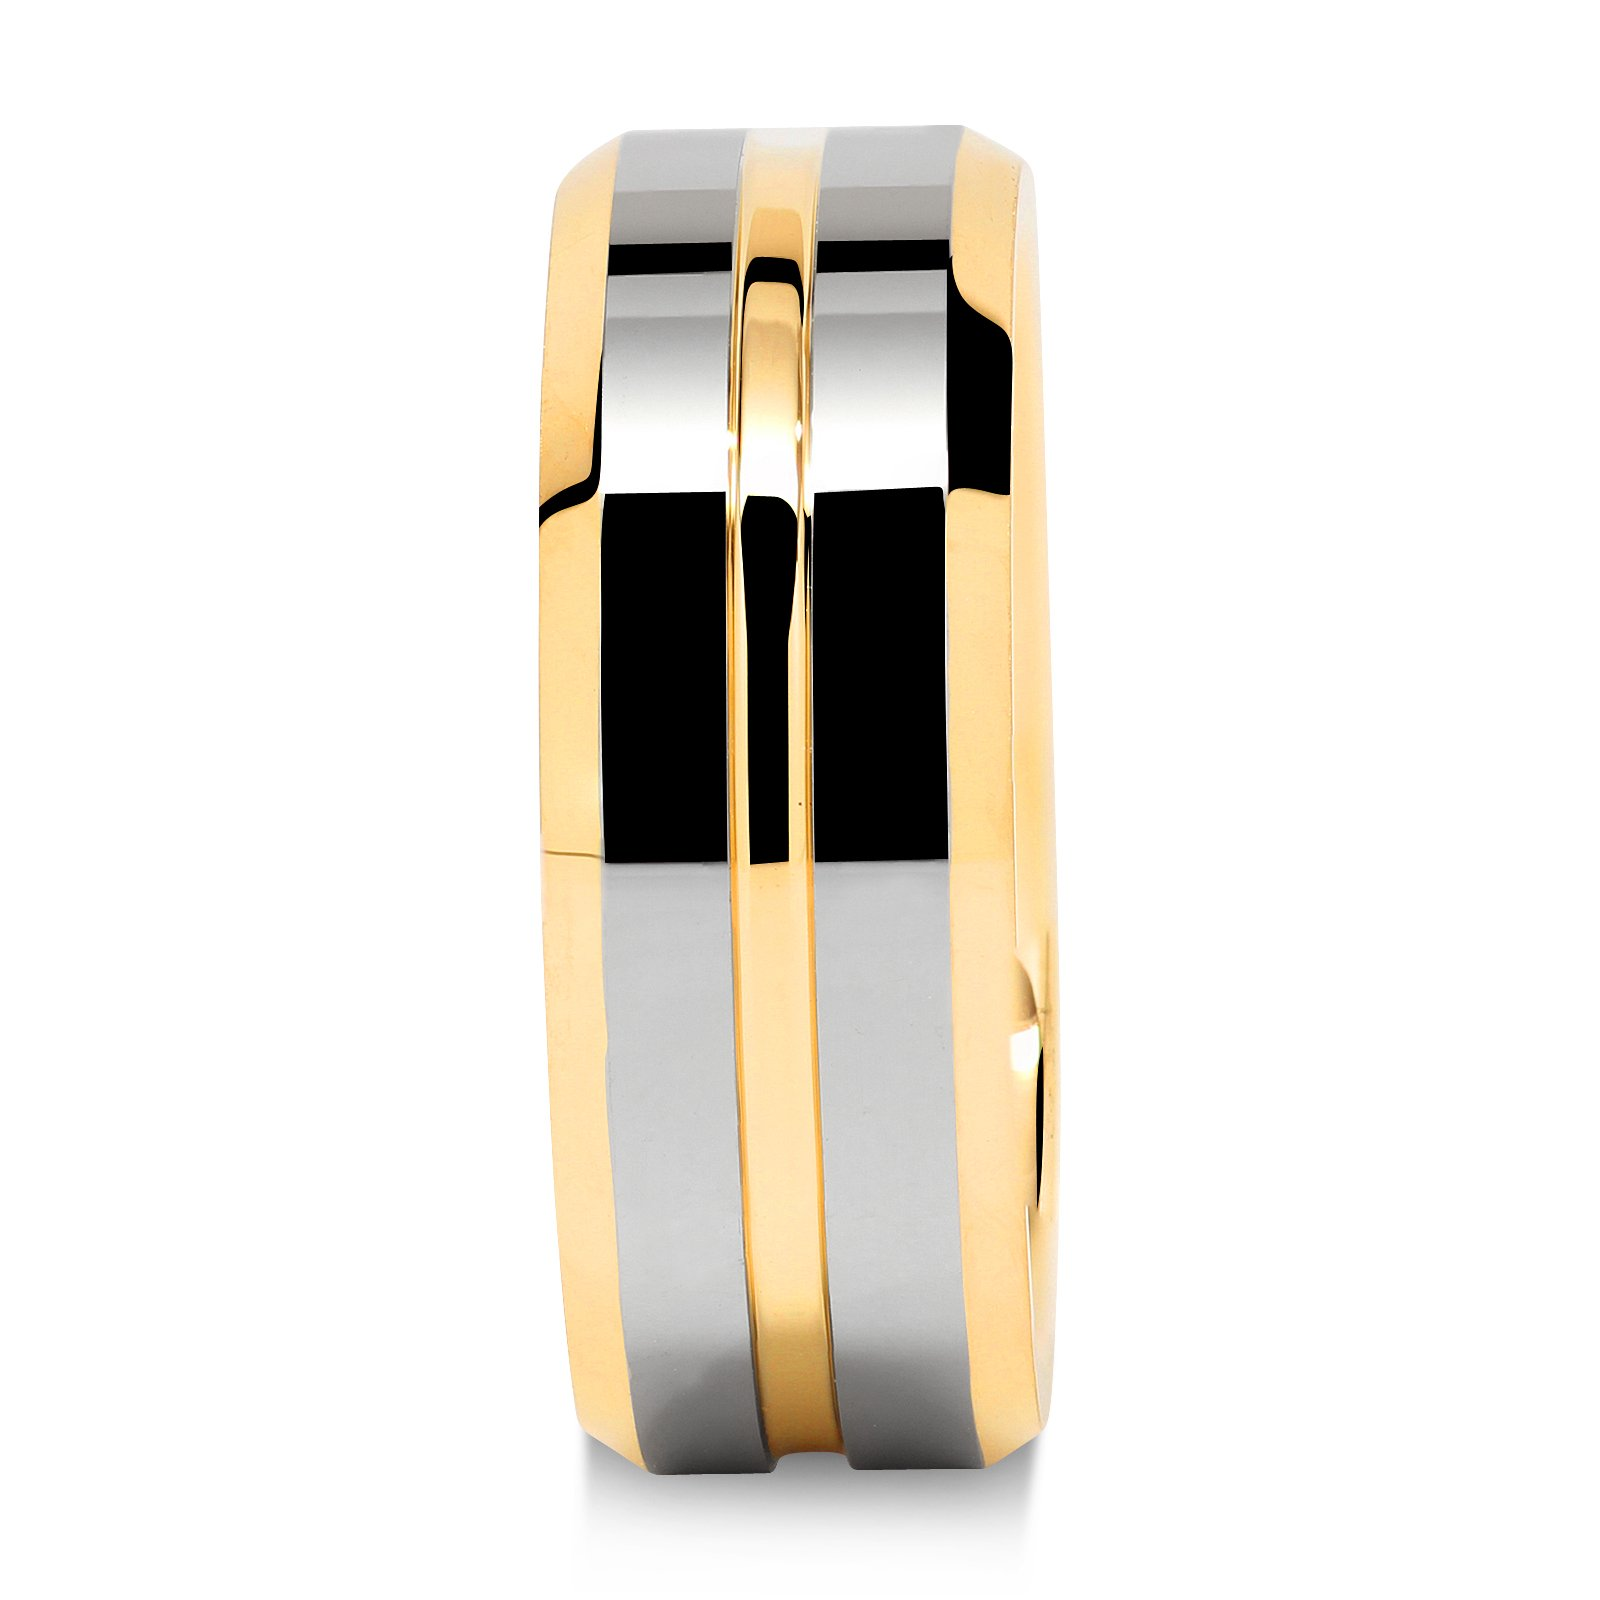 Tungsten Rings for Mens Wedding Bands Gold Silver Two Tone Grooved Center Line Size 8-15 (13) by 100S JEWELRY (Image #3)